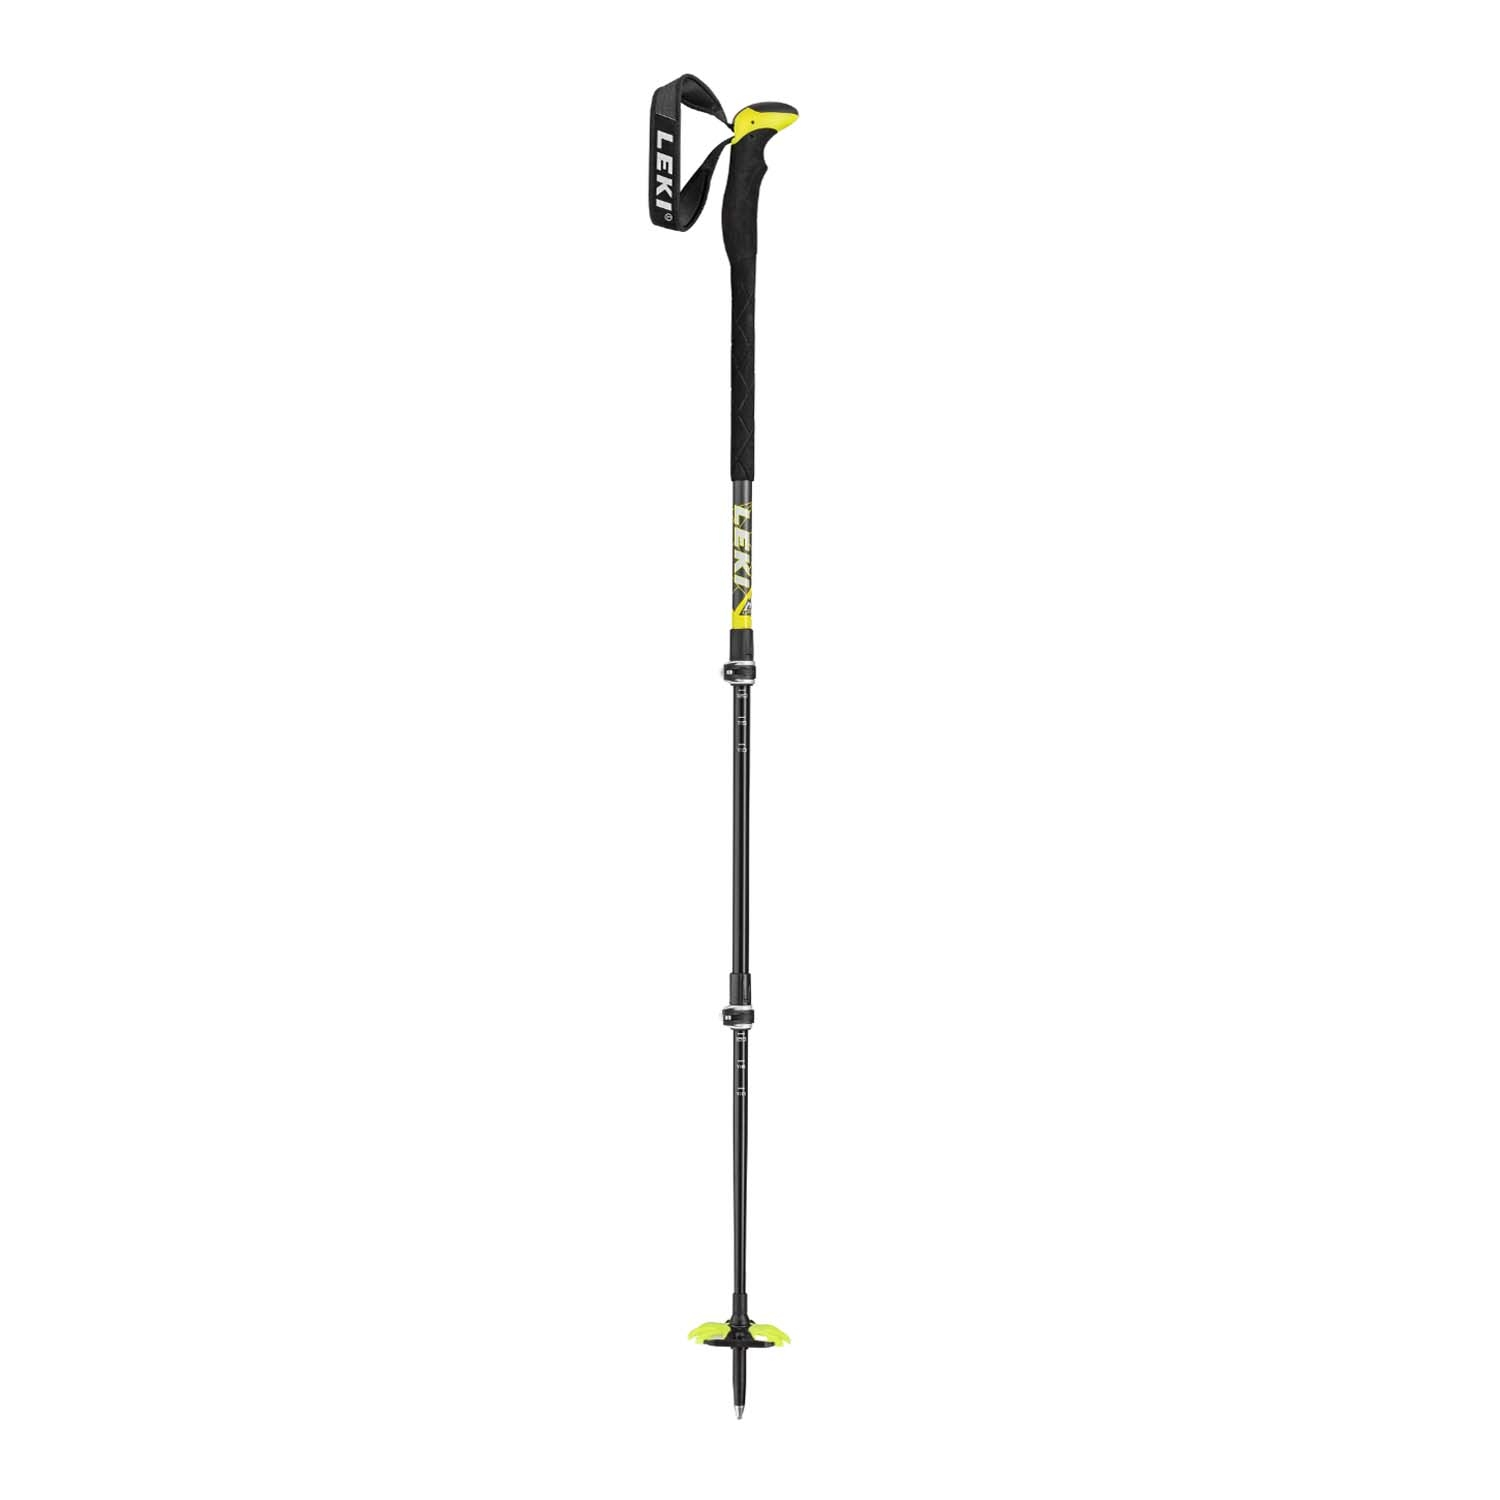 Leki Aergon 3 Adjustable Ski Poles 2021